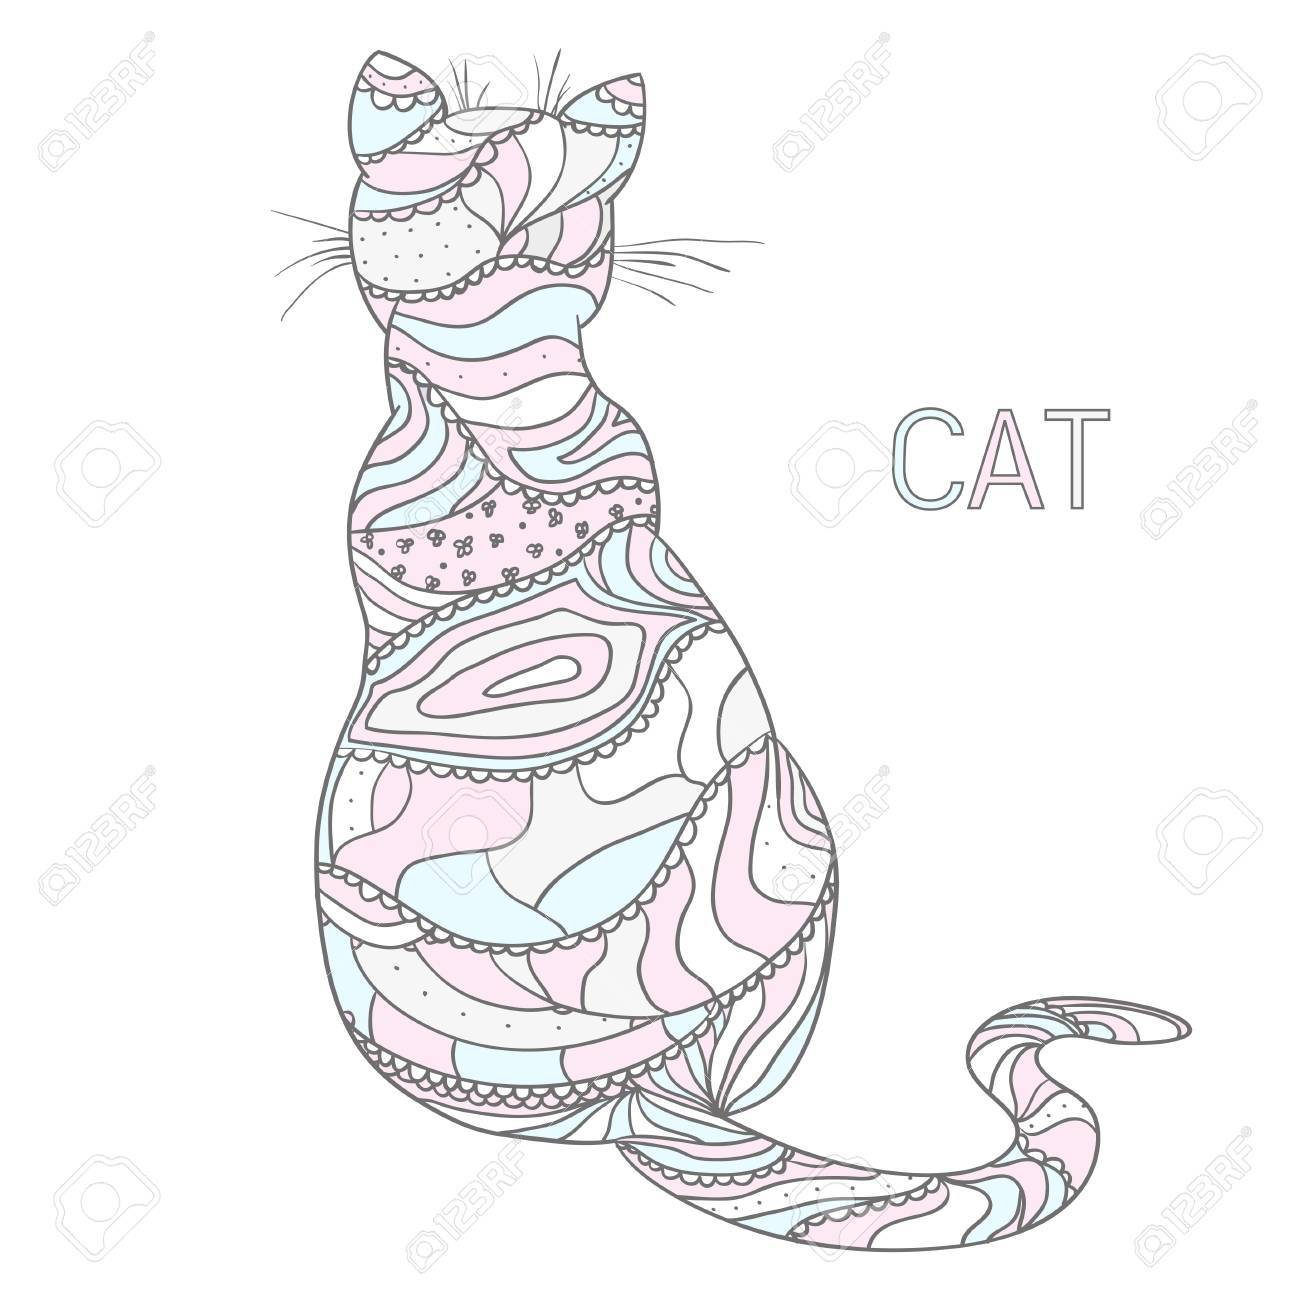 1300x1300 Cat Design Zentangle In Pastel Colors. Hand Drawn Cat